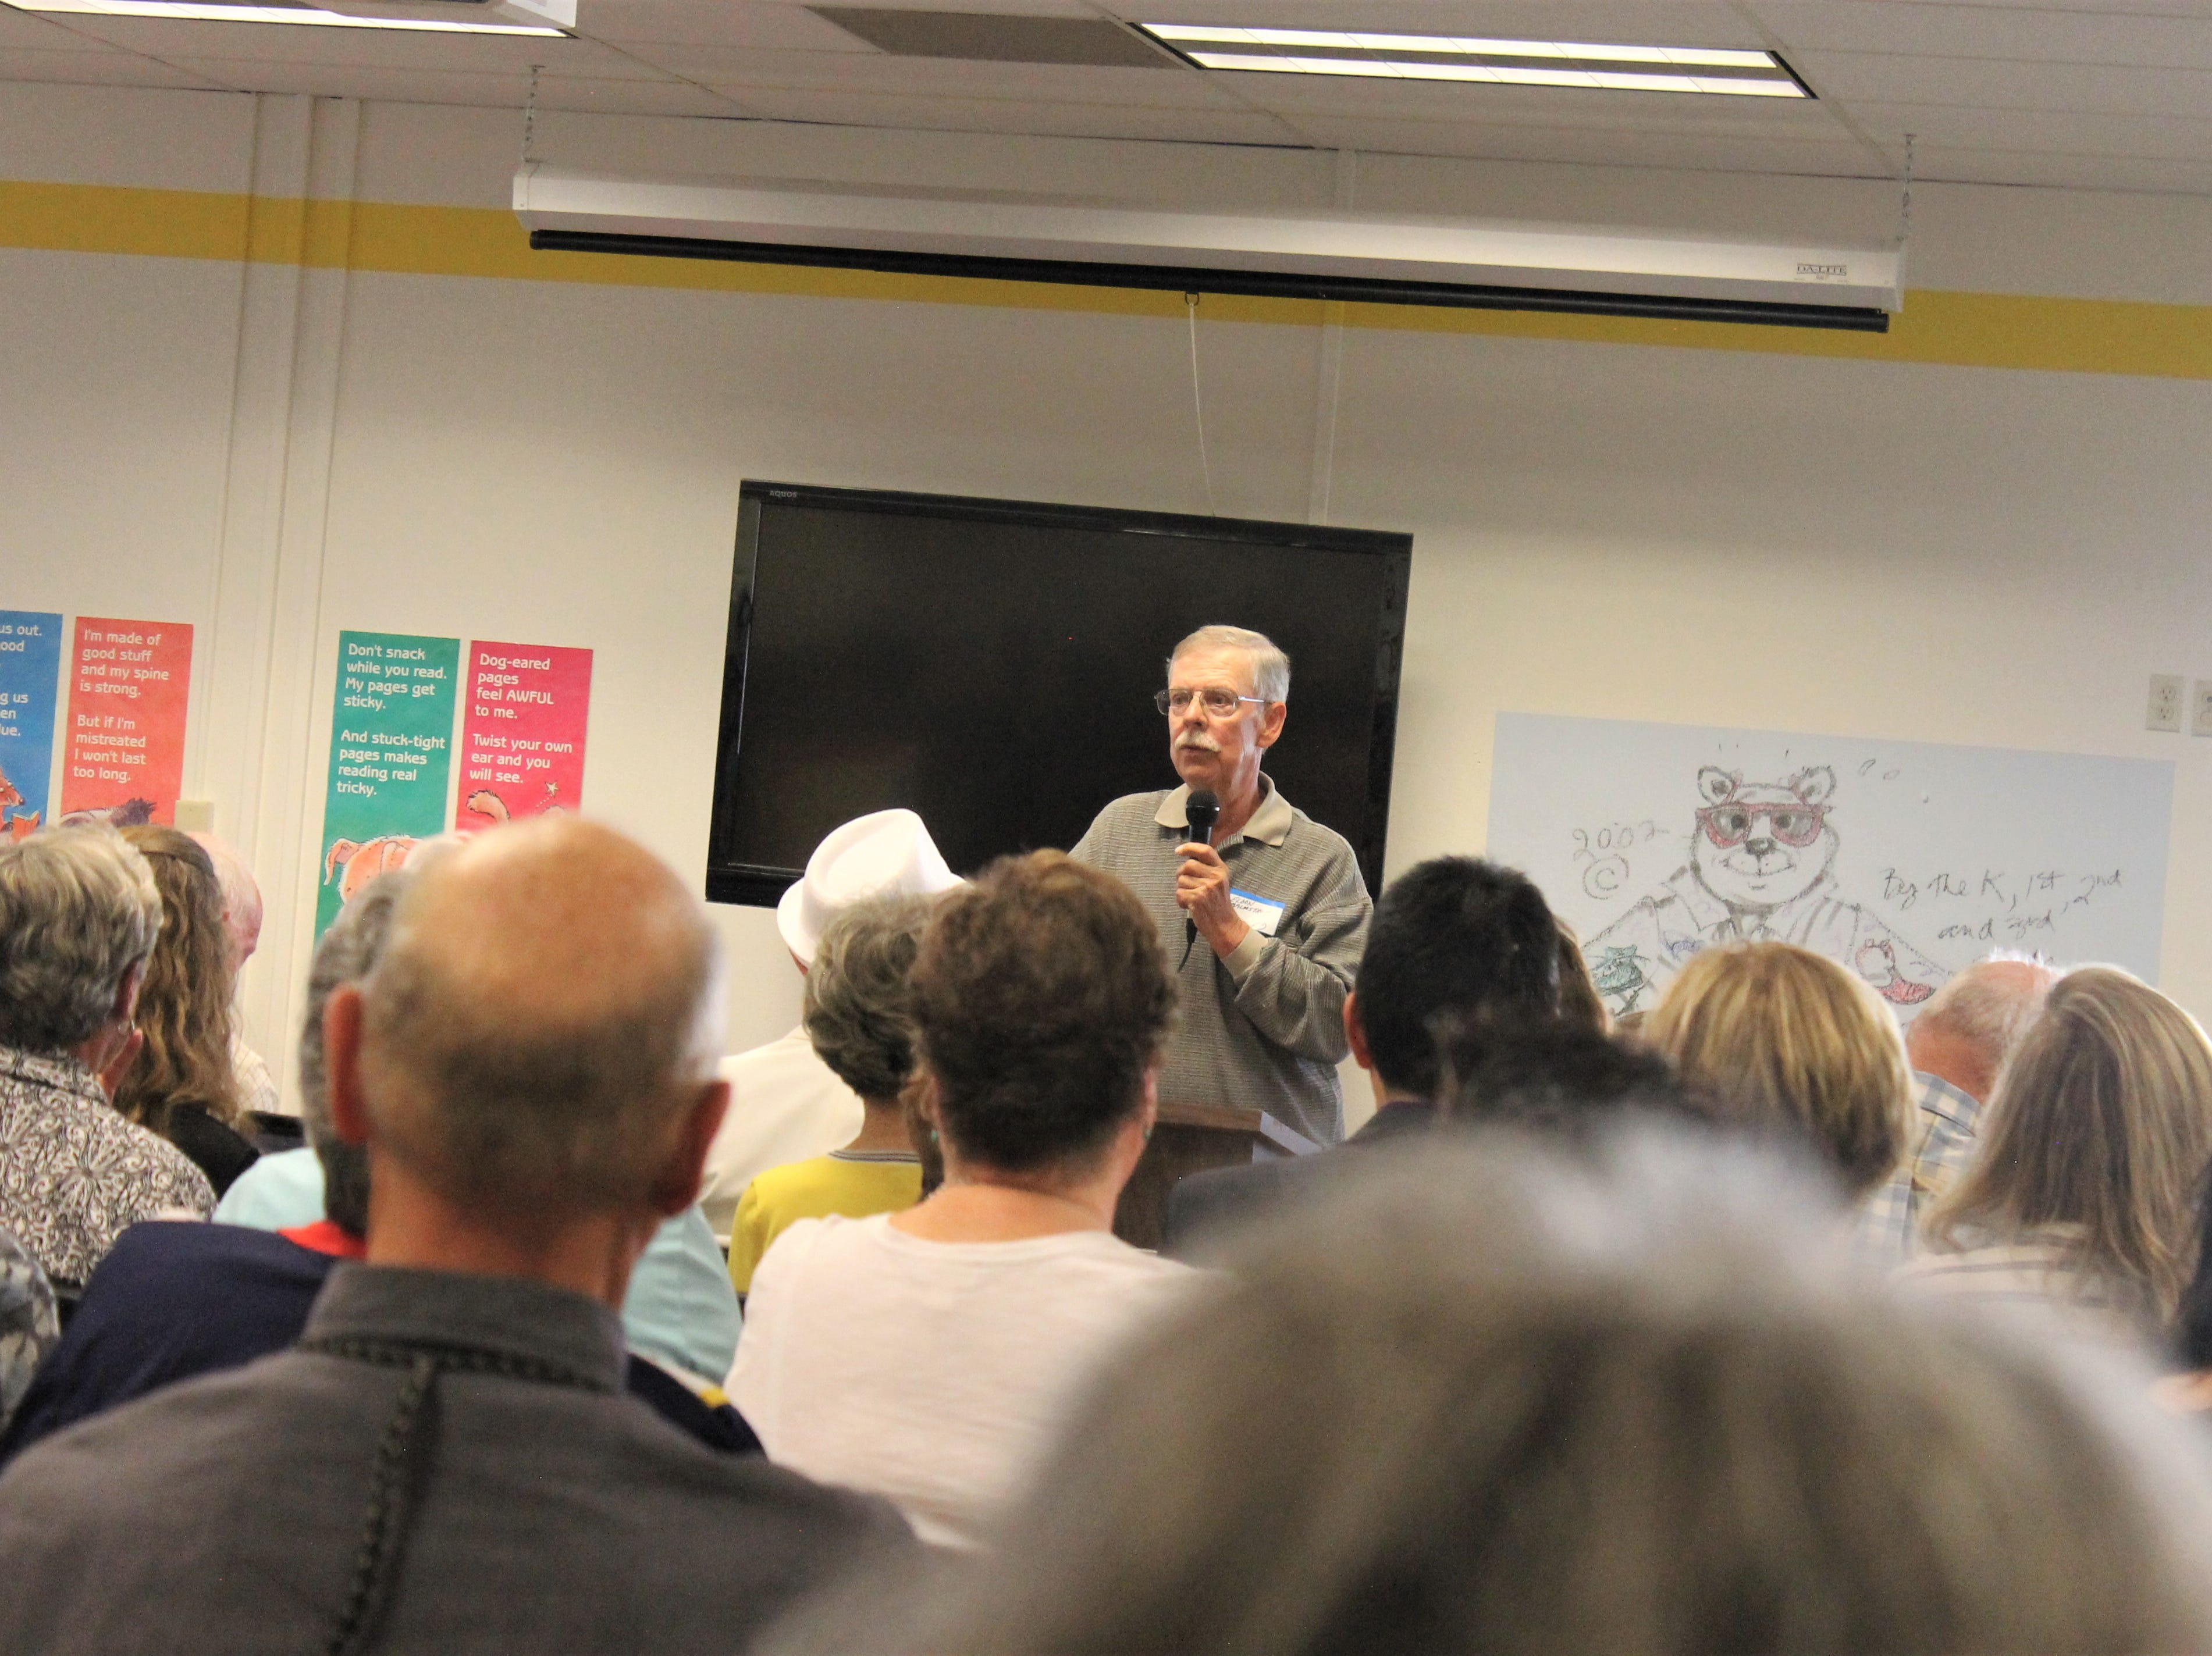 Eldon Malmstrom speaks to a crowd in Riffenburgh Elementary School's library Friday, April 26, 2019 as part of the school's 50th anniversary celebration.